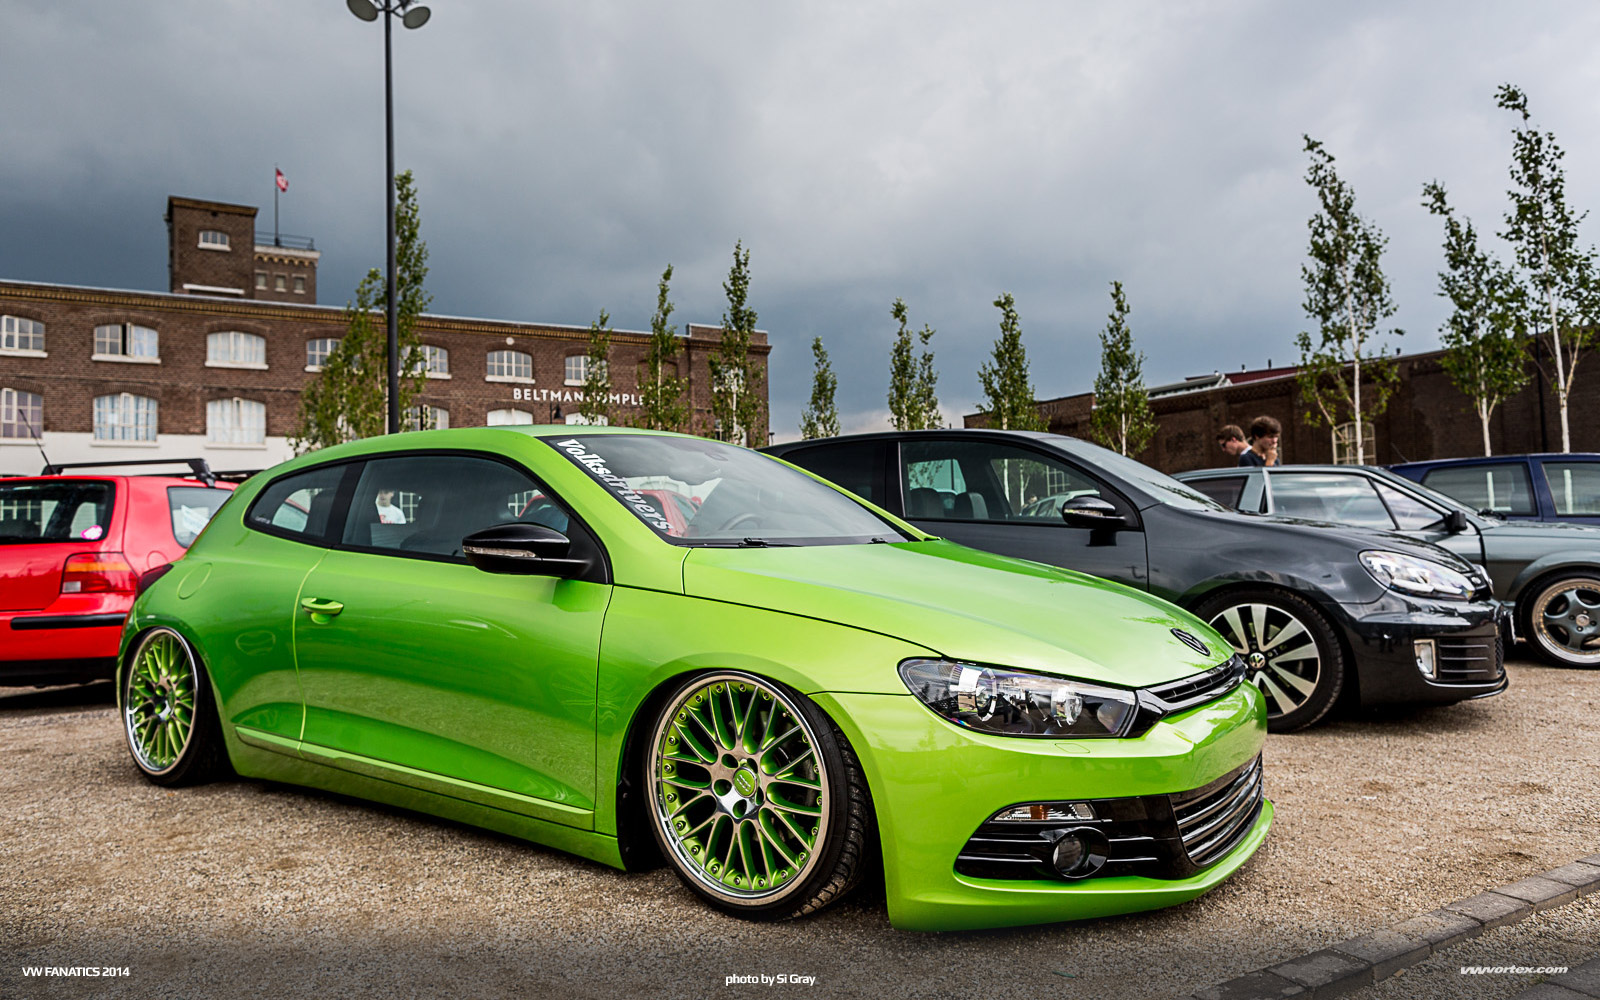 VWFanatics-2014-Si-Gray-464